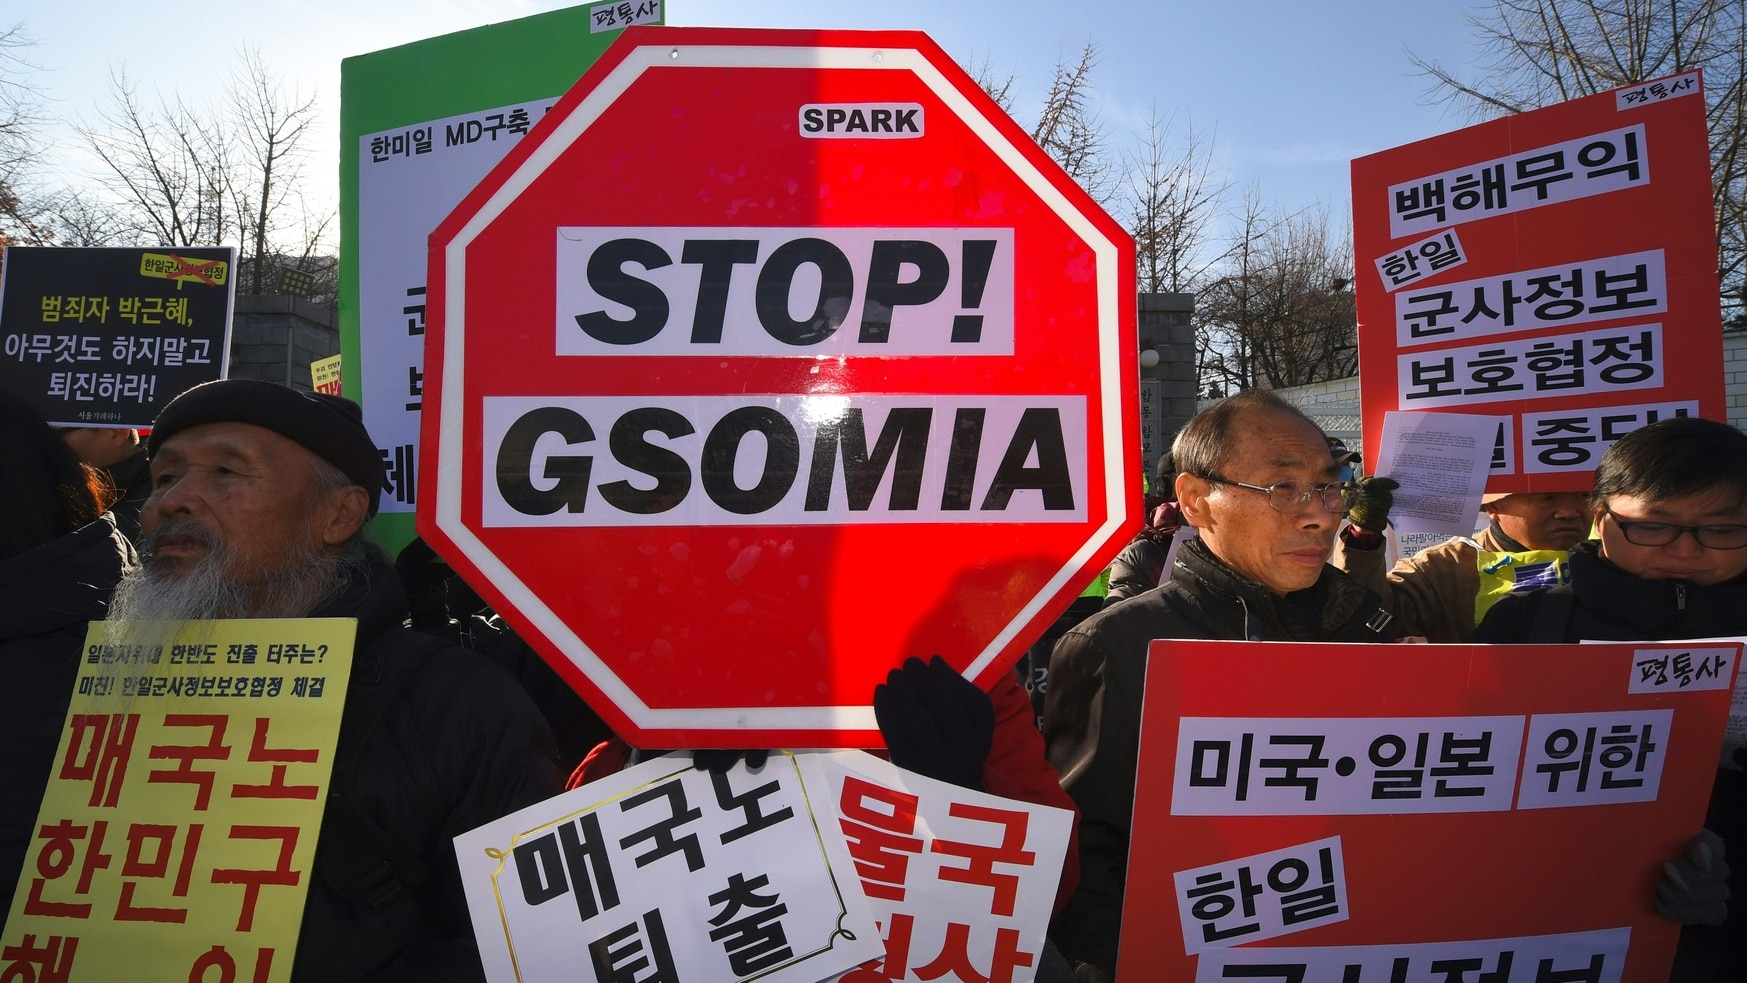 In 2016, the signing of the General Security of Military Information Agreement (GSOMIA) between South Korea and Japan led to protests. (JUNG YEON-JE/AFP/Getty Images)